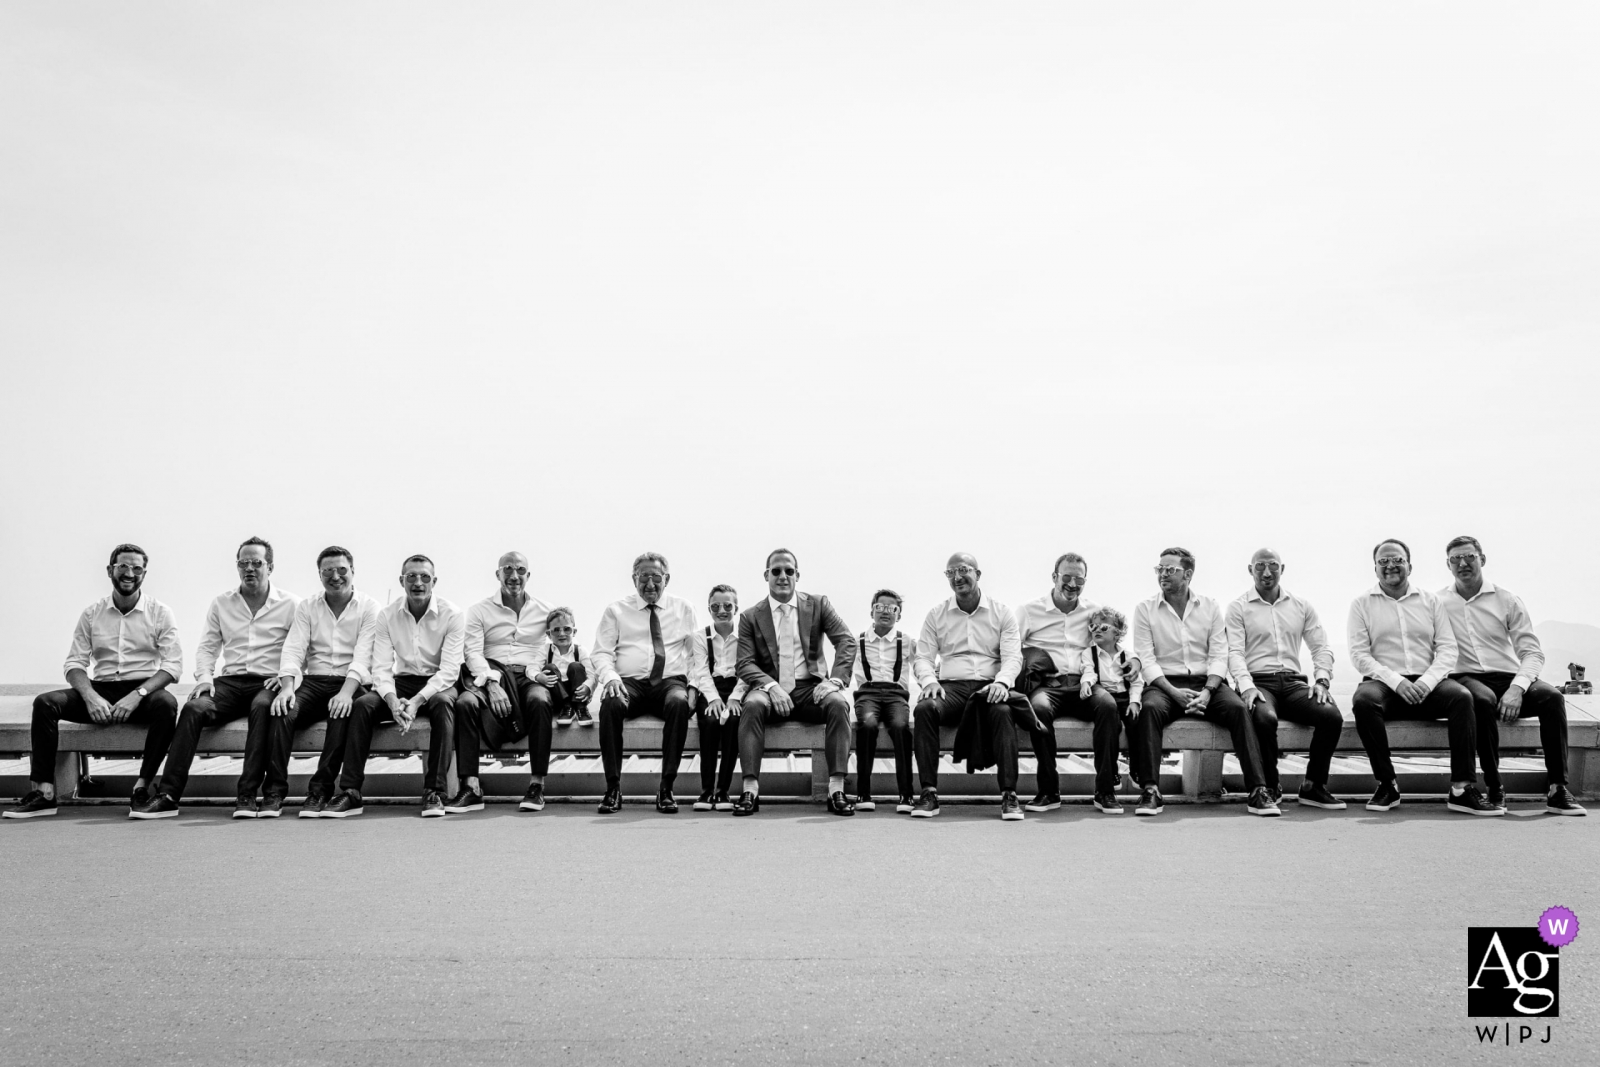 Groom, groomsmen, bestmen, father all together for a wedding at  Croisette, Cannes, France